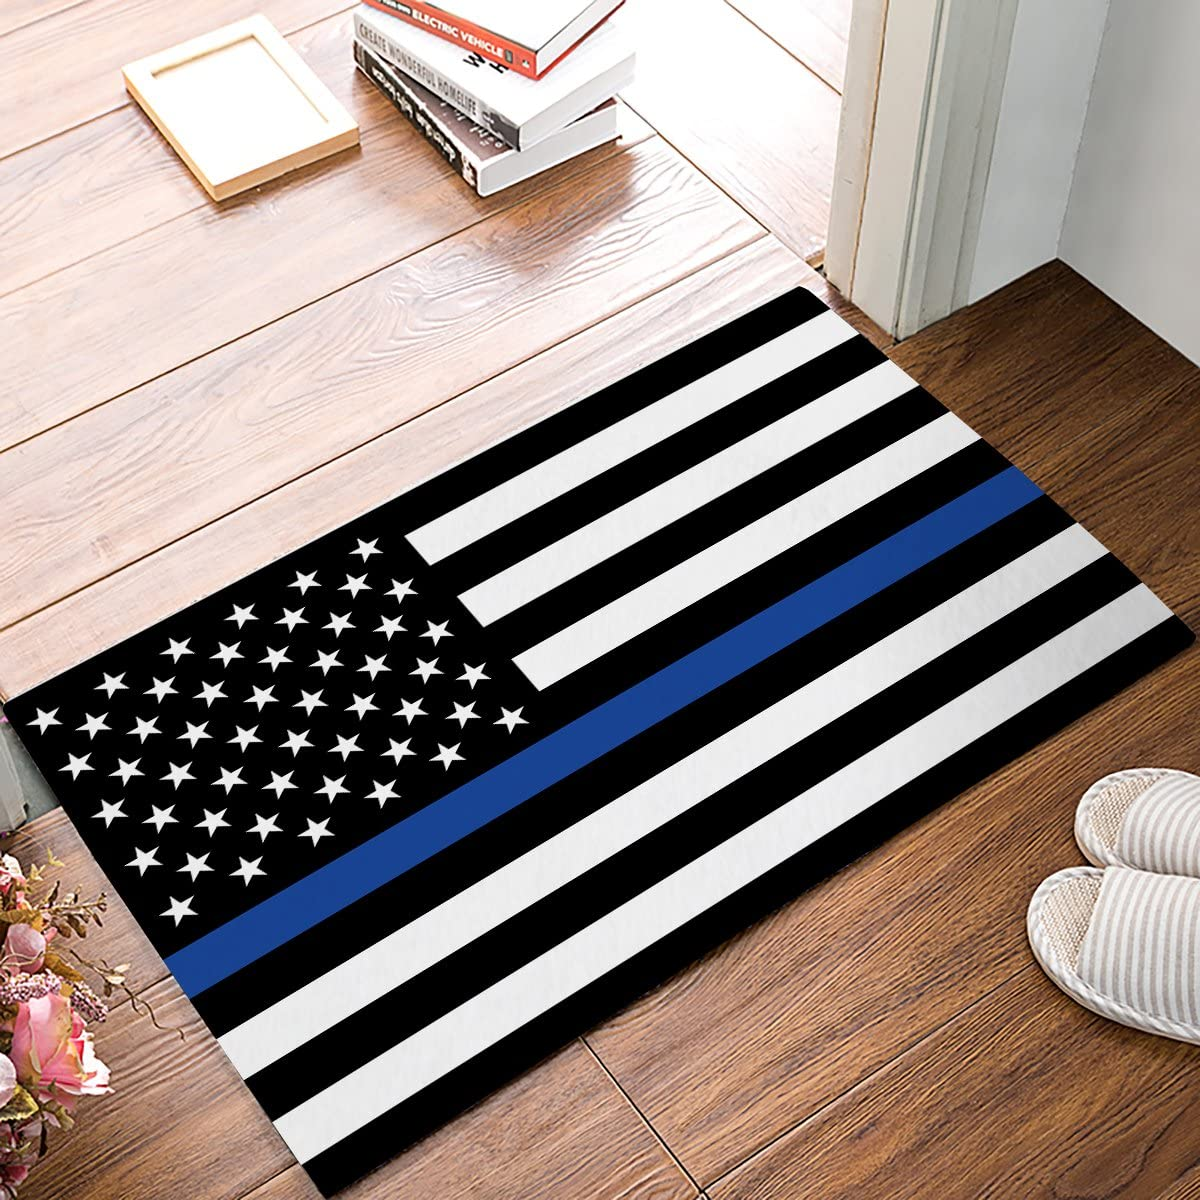 "FAMILYDECOR Doormat for Entrance Way Indoor/Bathroom/Front Door Area Floor Mat Rugs Rubber Non Slip Absorb Kitchen Runner Carpet, Blue Line Us Flag Honoring Men and Women, 30""x18"""